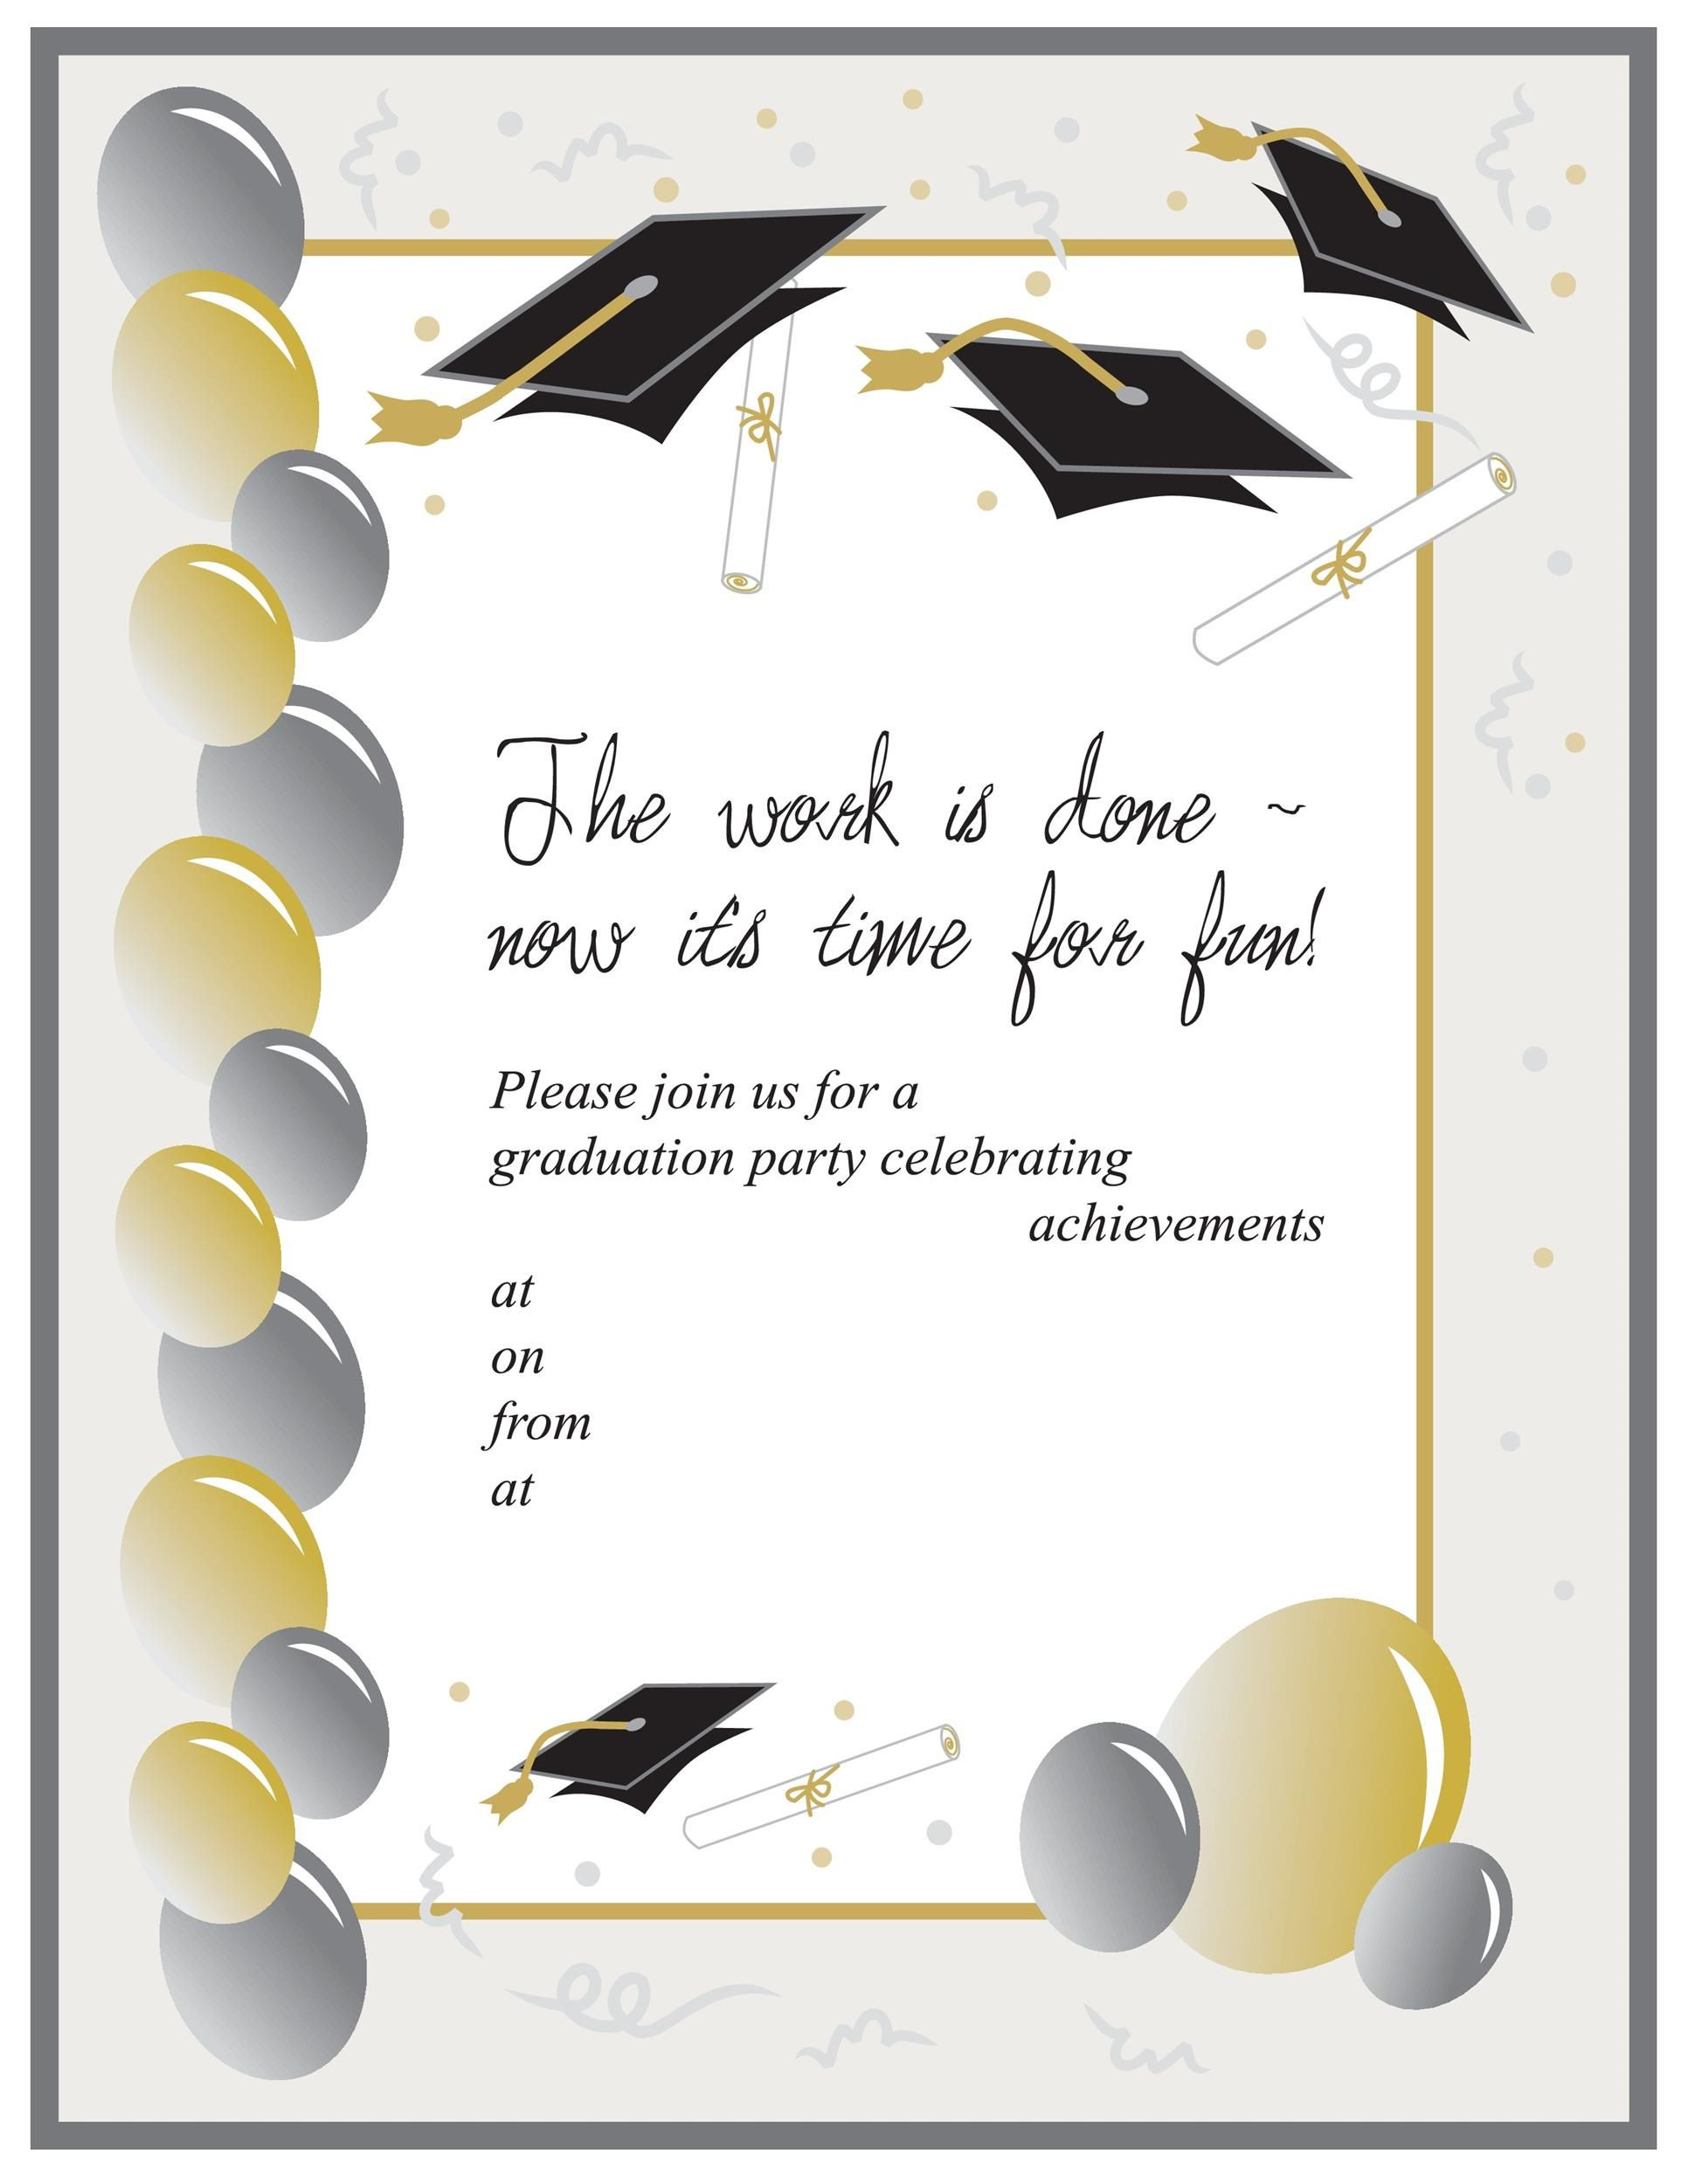 008 Formidable Free Printable Graduation Invitation Template Example  Party For WordFull